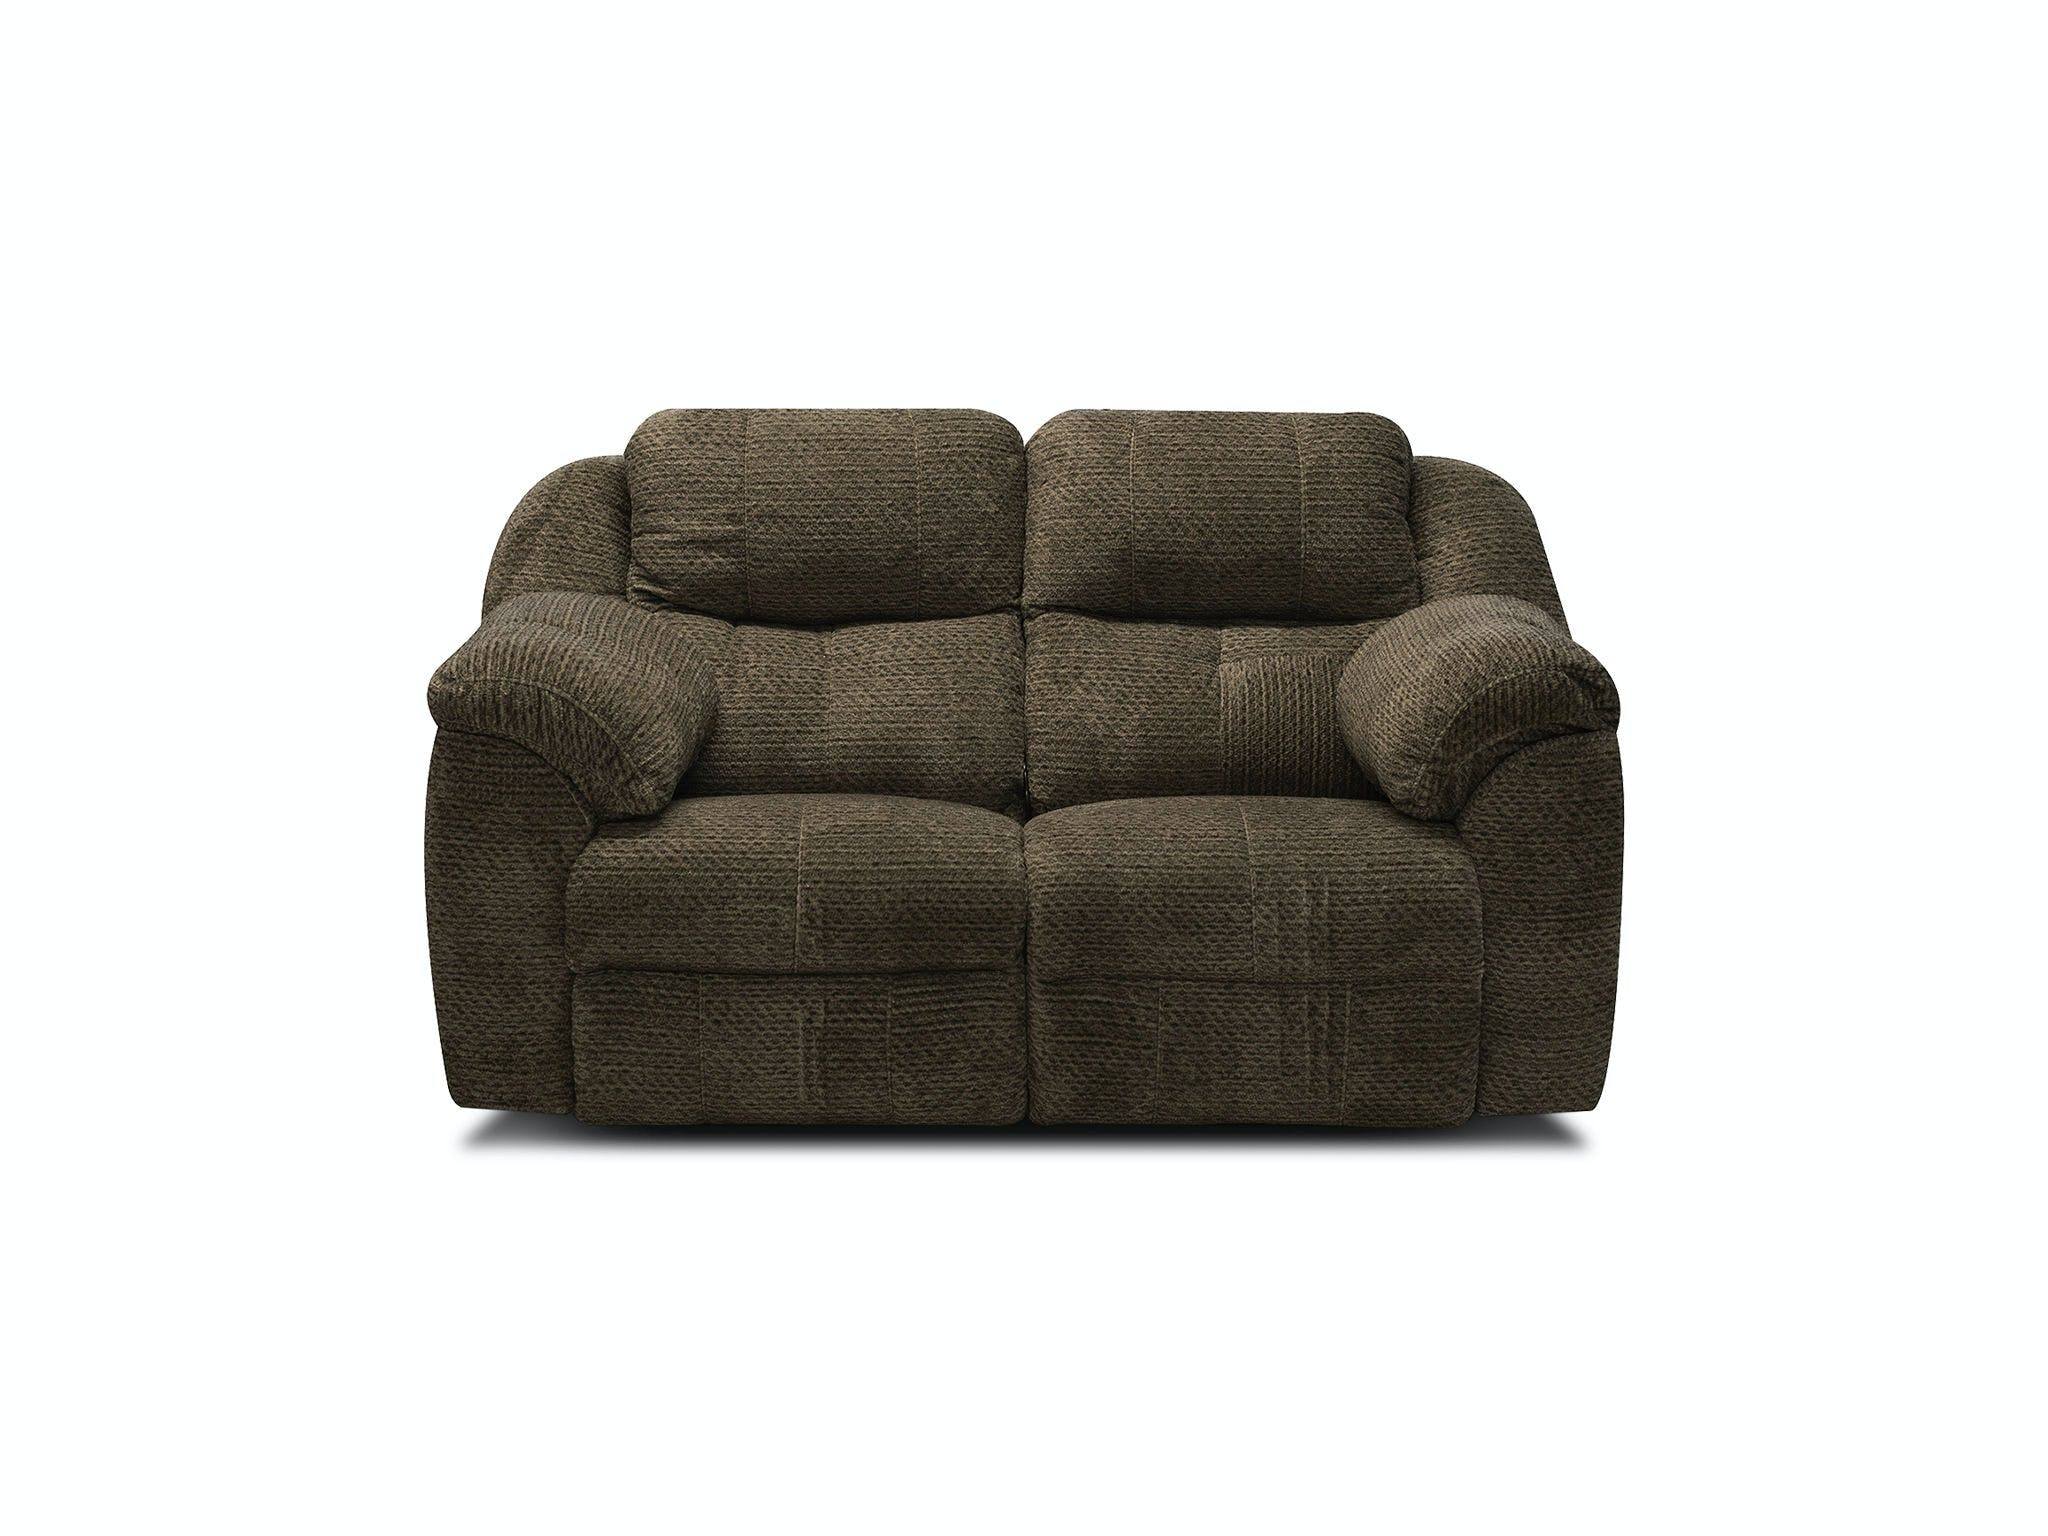 Picture of: England Living Room Ez6d00r Double Reclining Loveseat Ez6d03r England Furniture New Tazewell